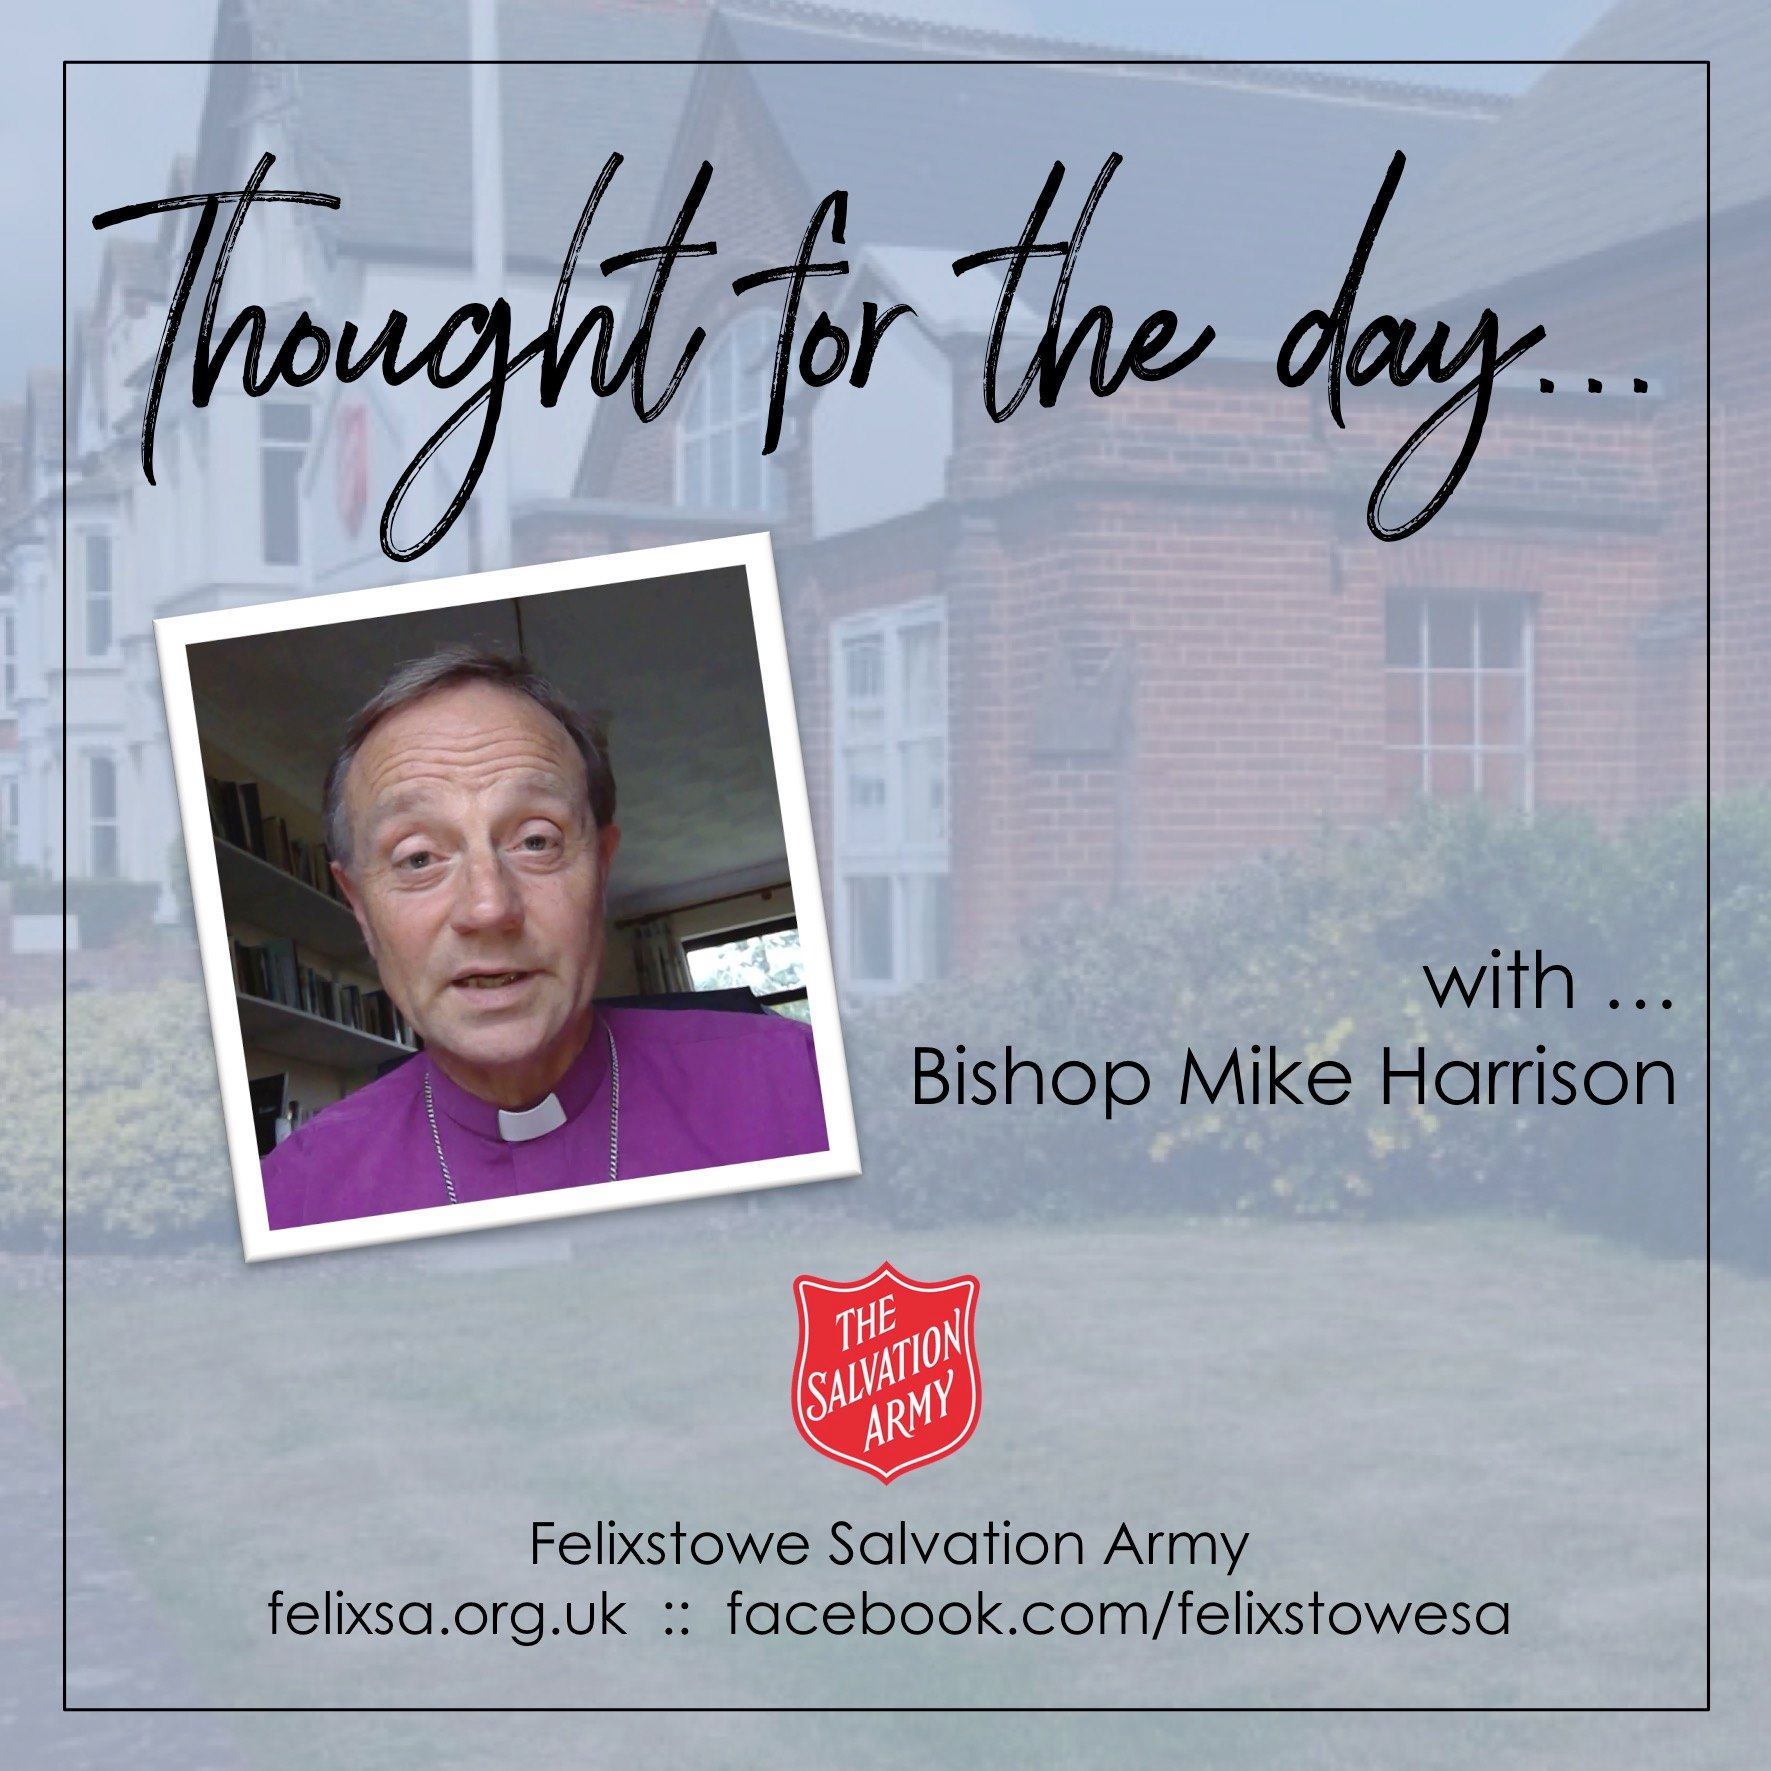 Thought for the Day with Bishop Mike Harrison (Bishop of Dunwich)